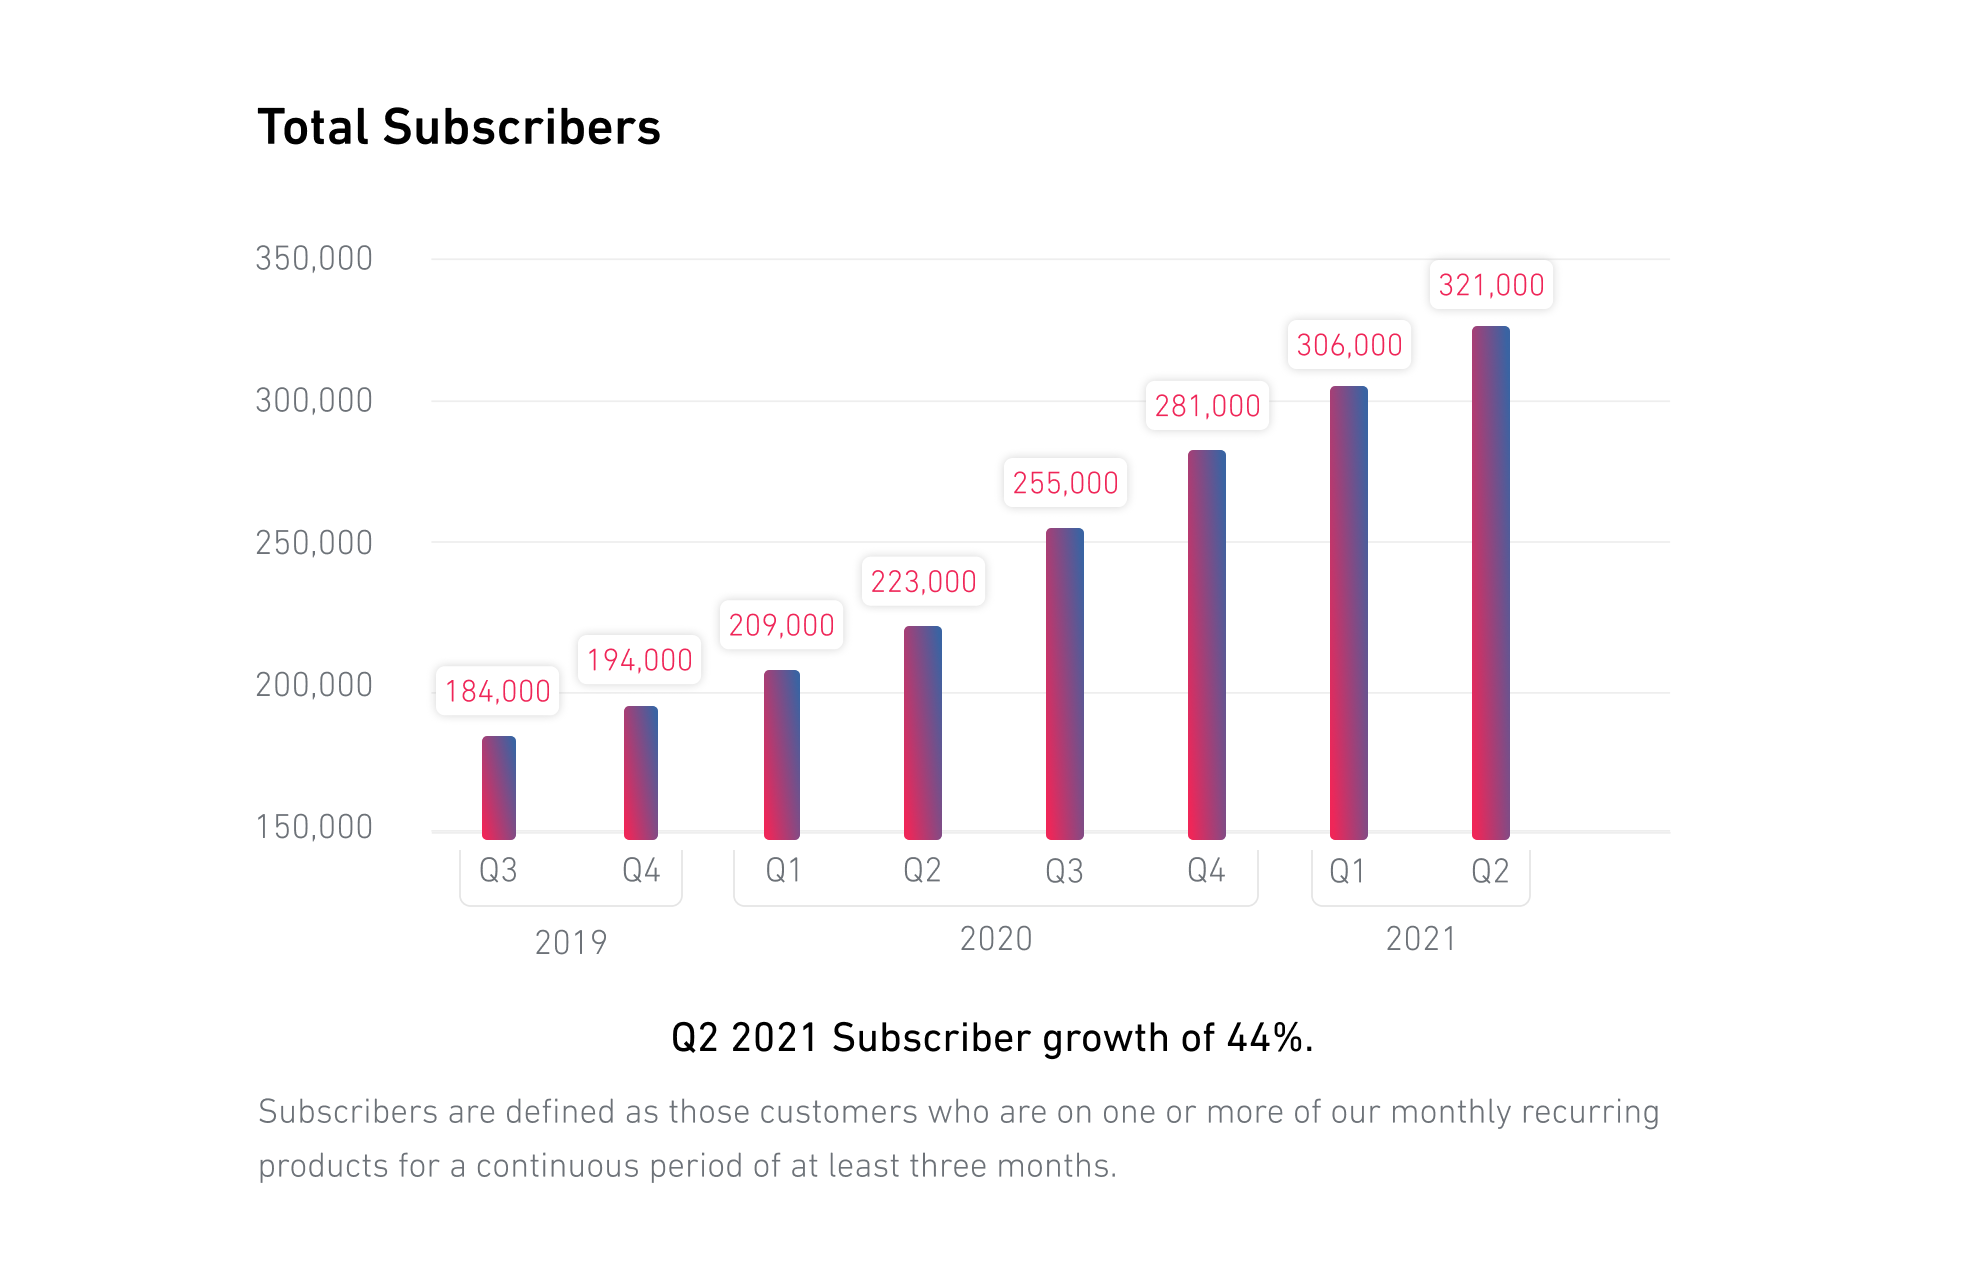 Total Subscribers